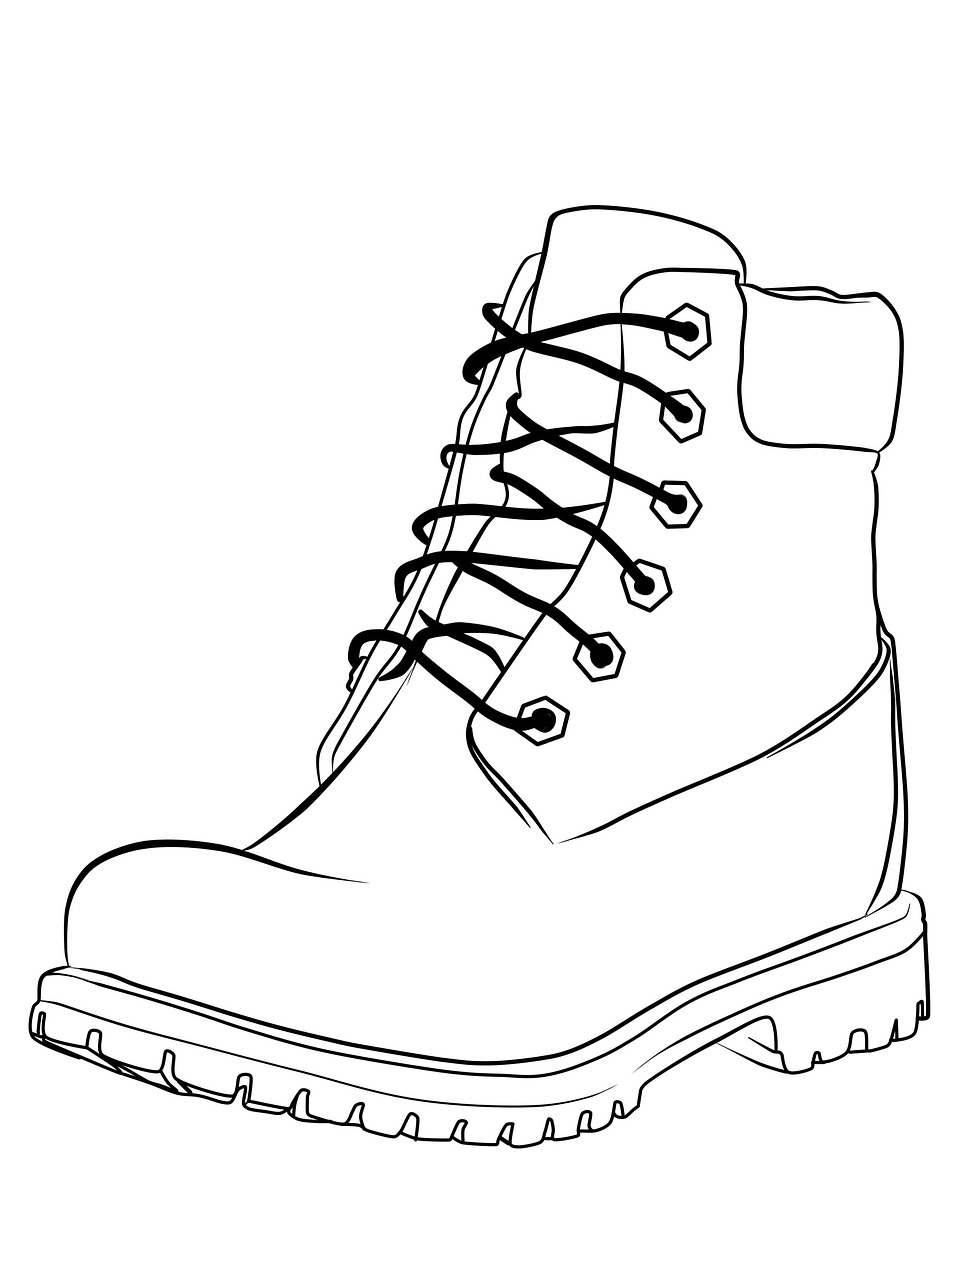 Coloring,shoes,shoe,black and white,line - free image from ...